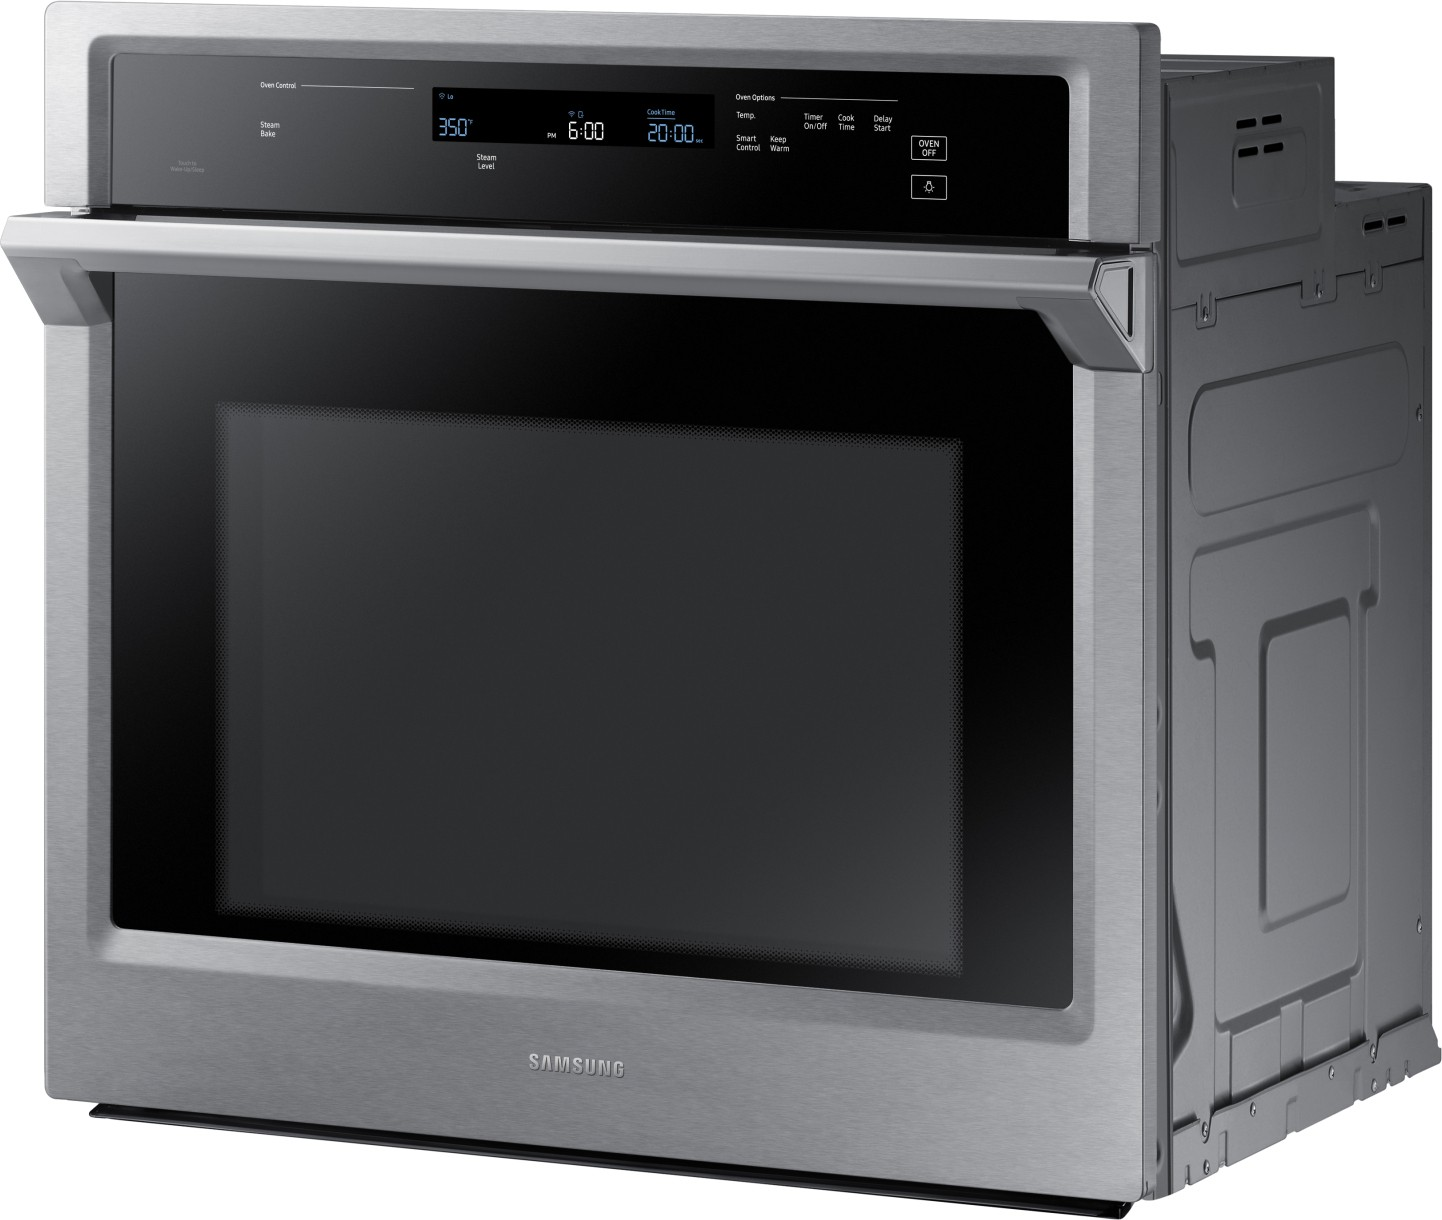 NV51K6650SS Samsung 30 Single Wall Oven With Steam Bake Convection Stainless Steel